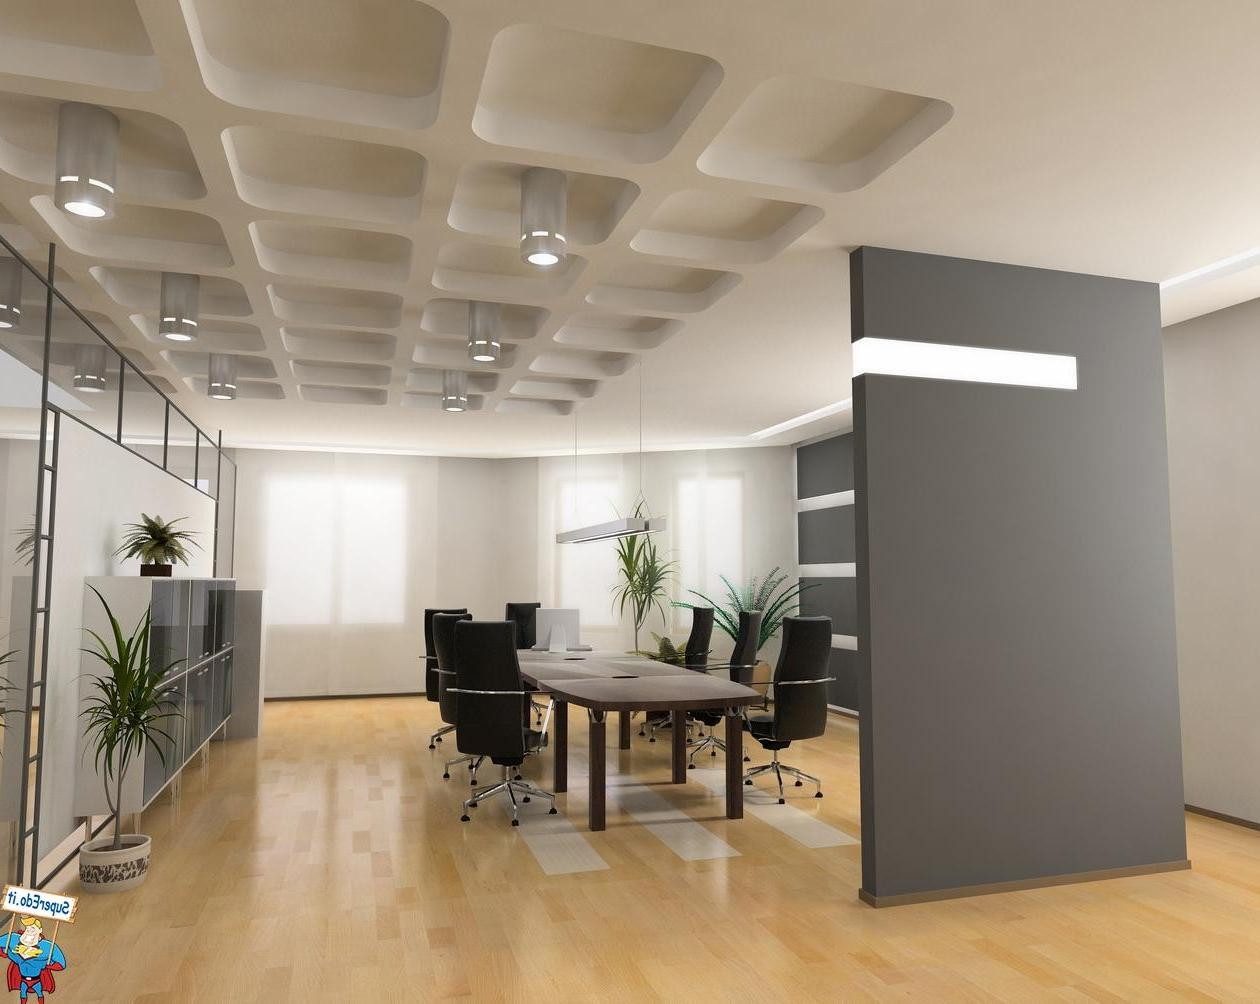 New Office Design Concept